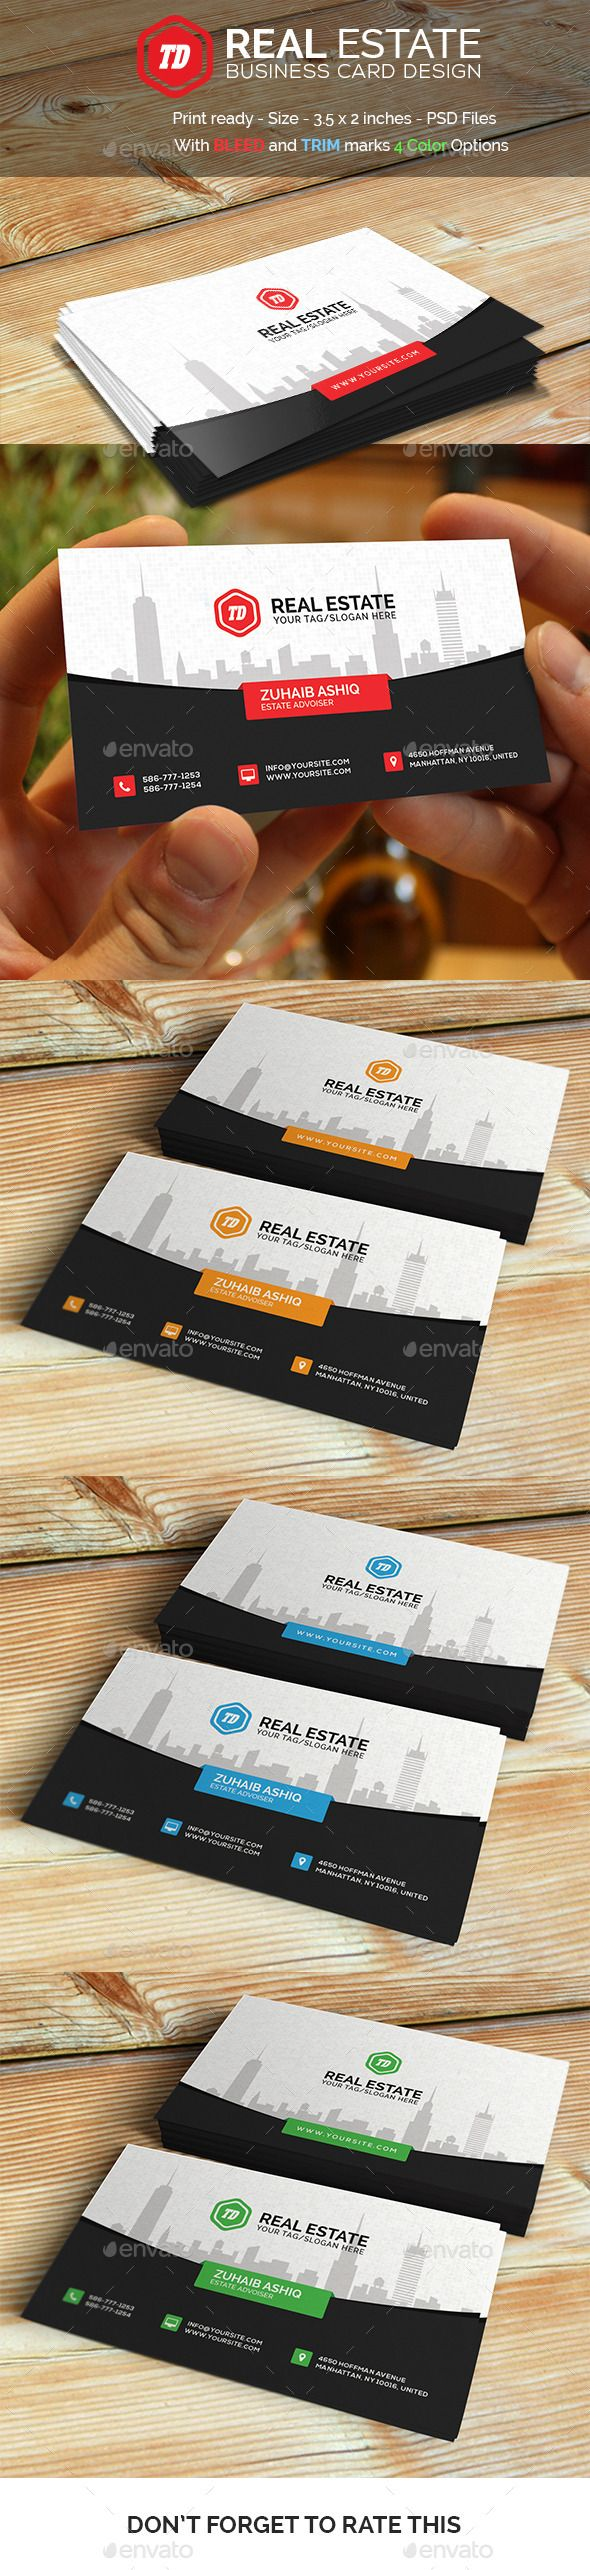 Real Estate - Business Card | Real estate business cards, Real ...